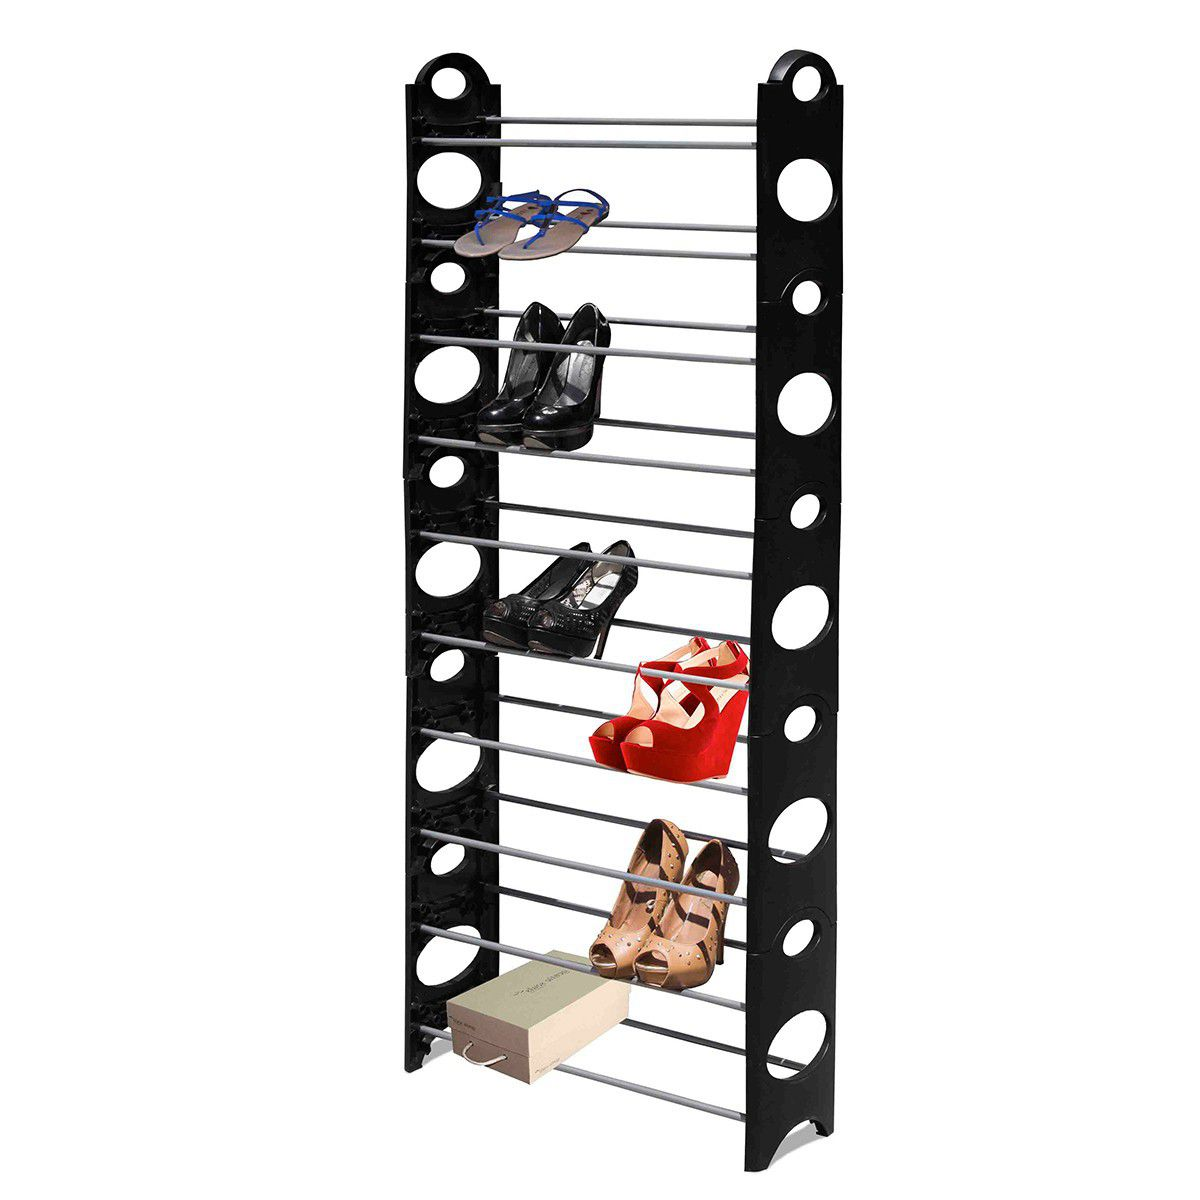 10 tier shoe rack b-zoom